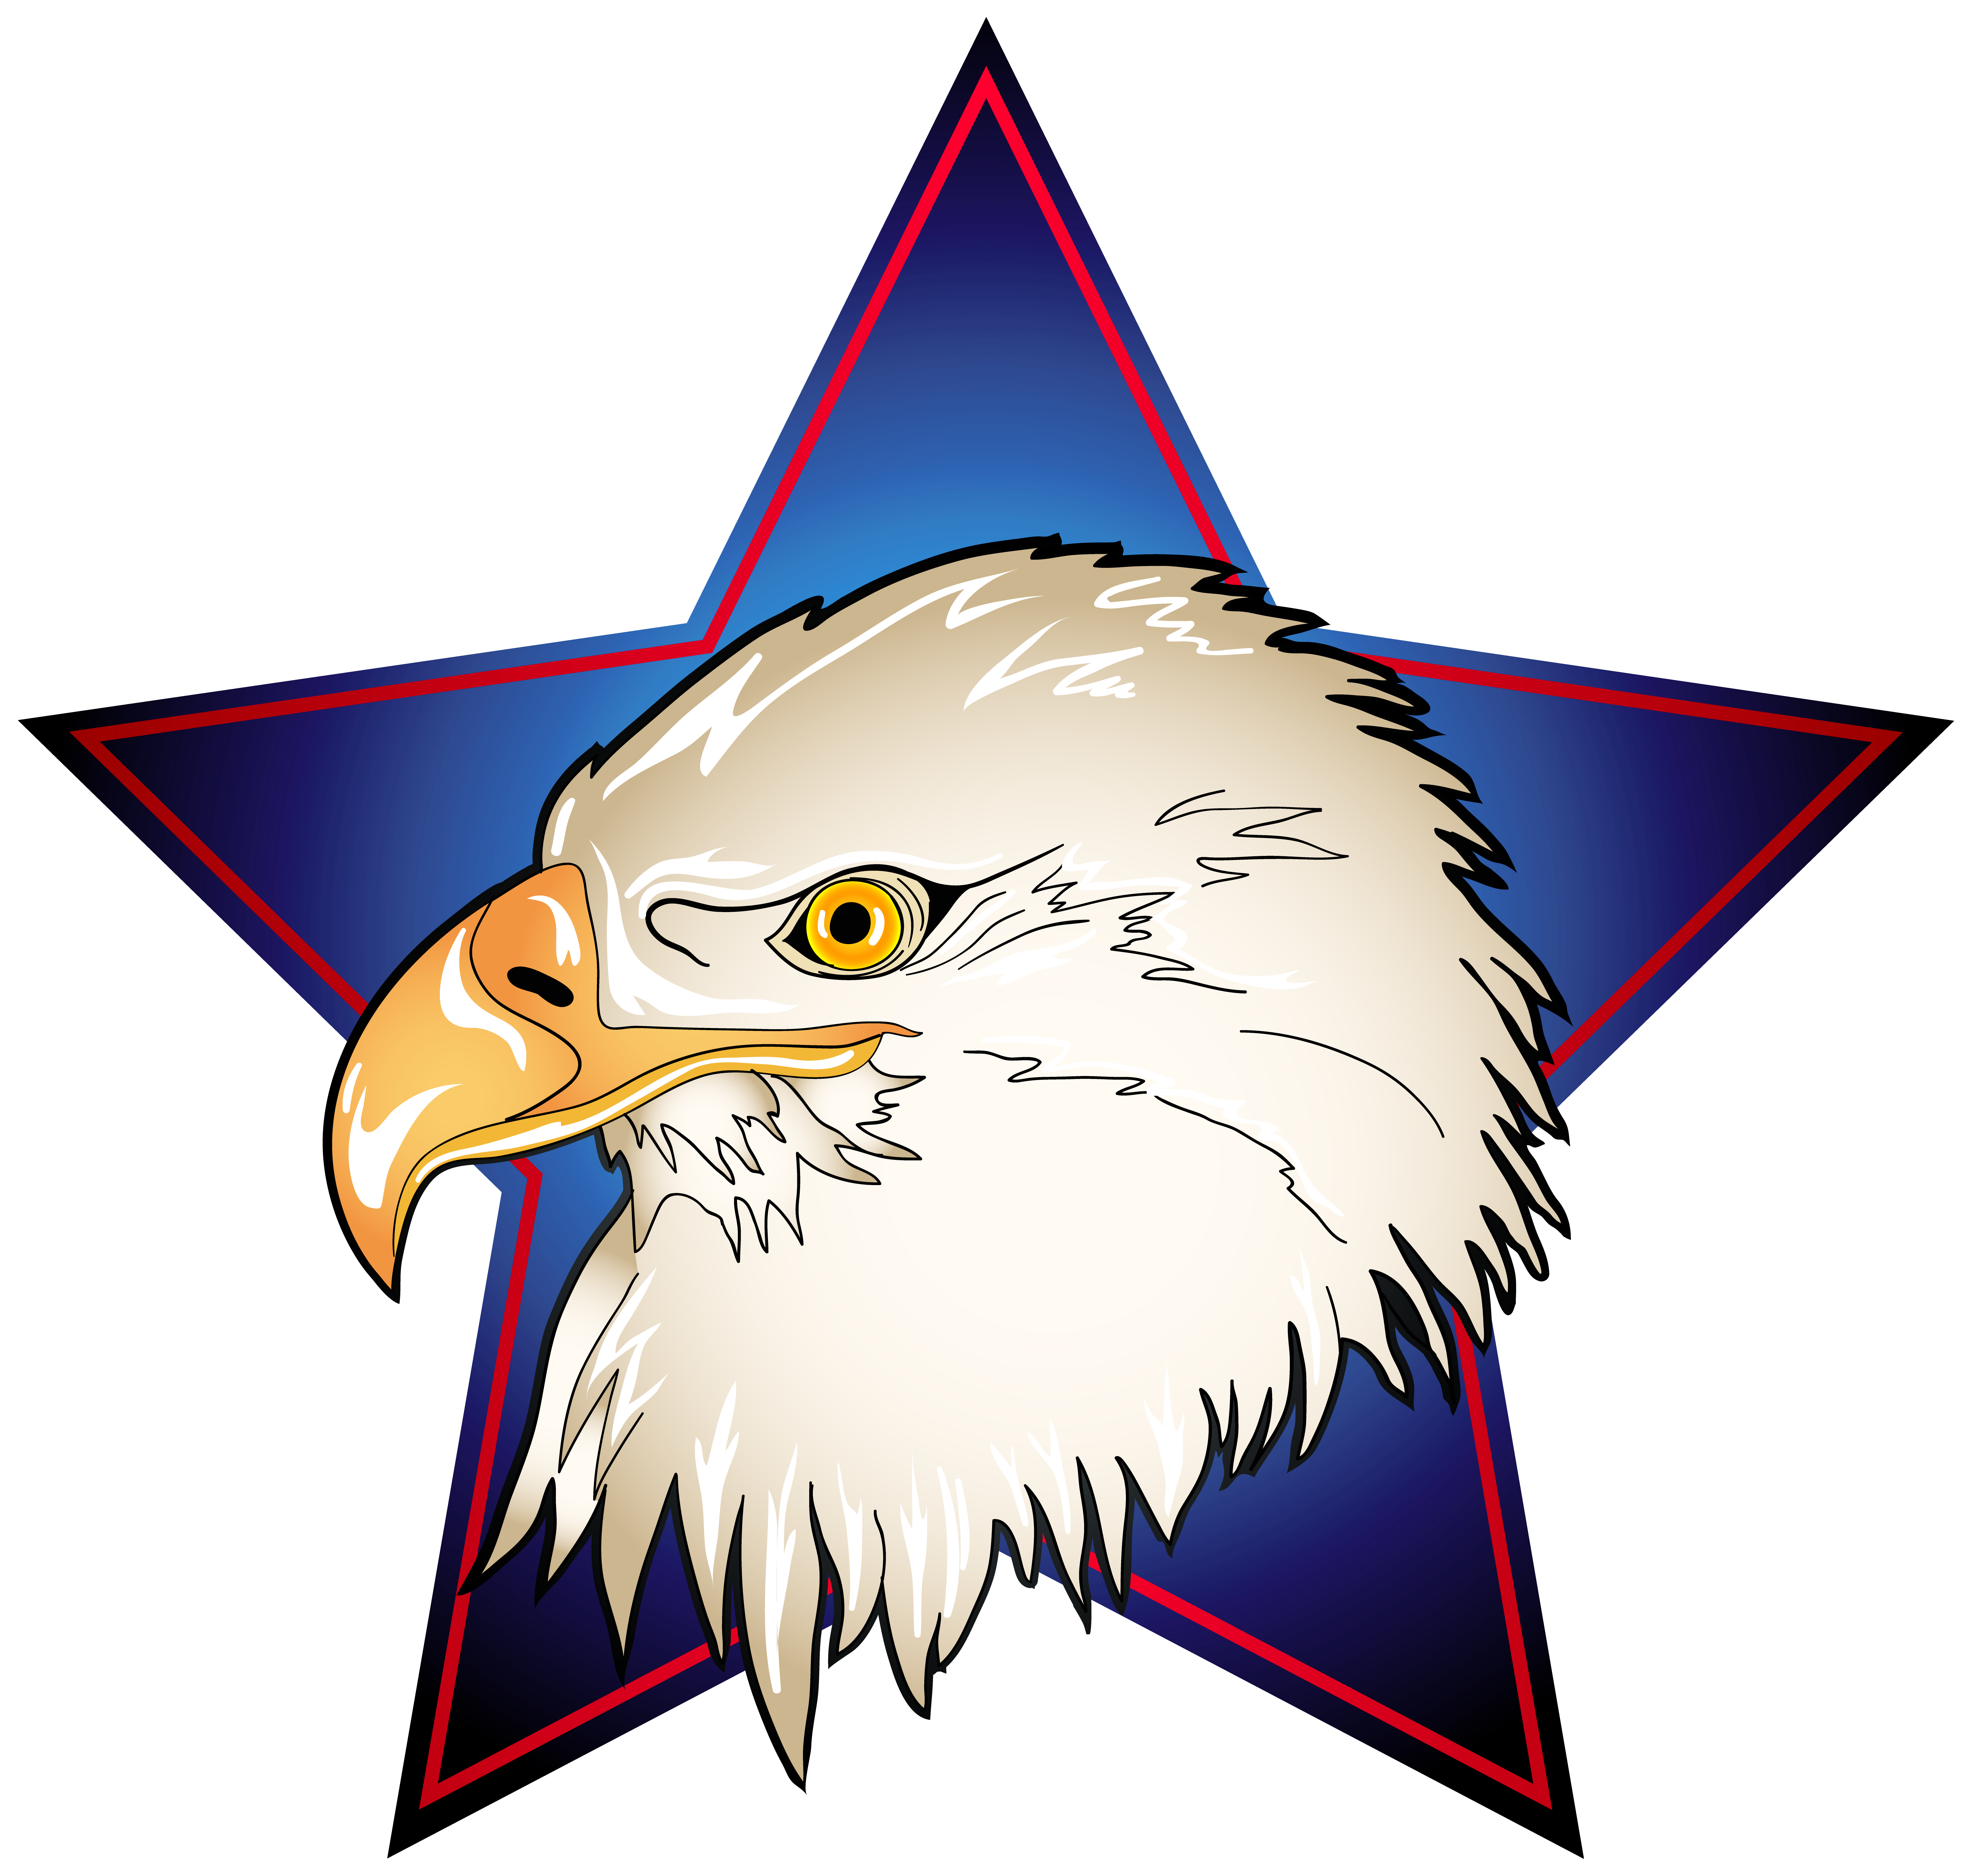 Eagle clipart diving. Head in blue star